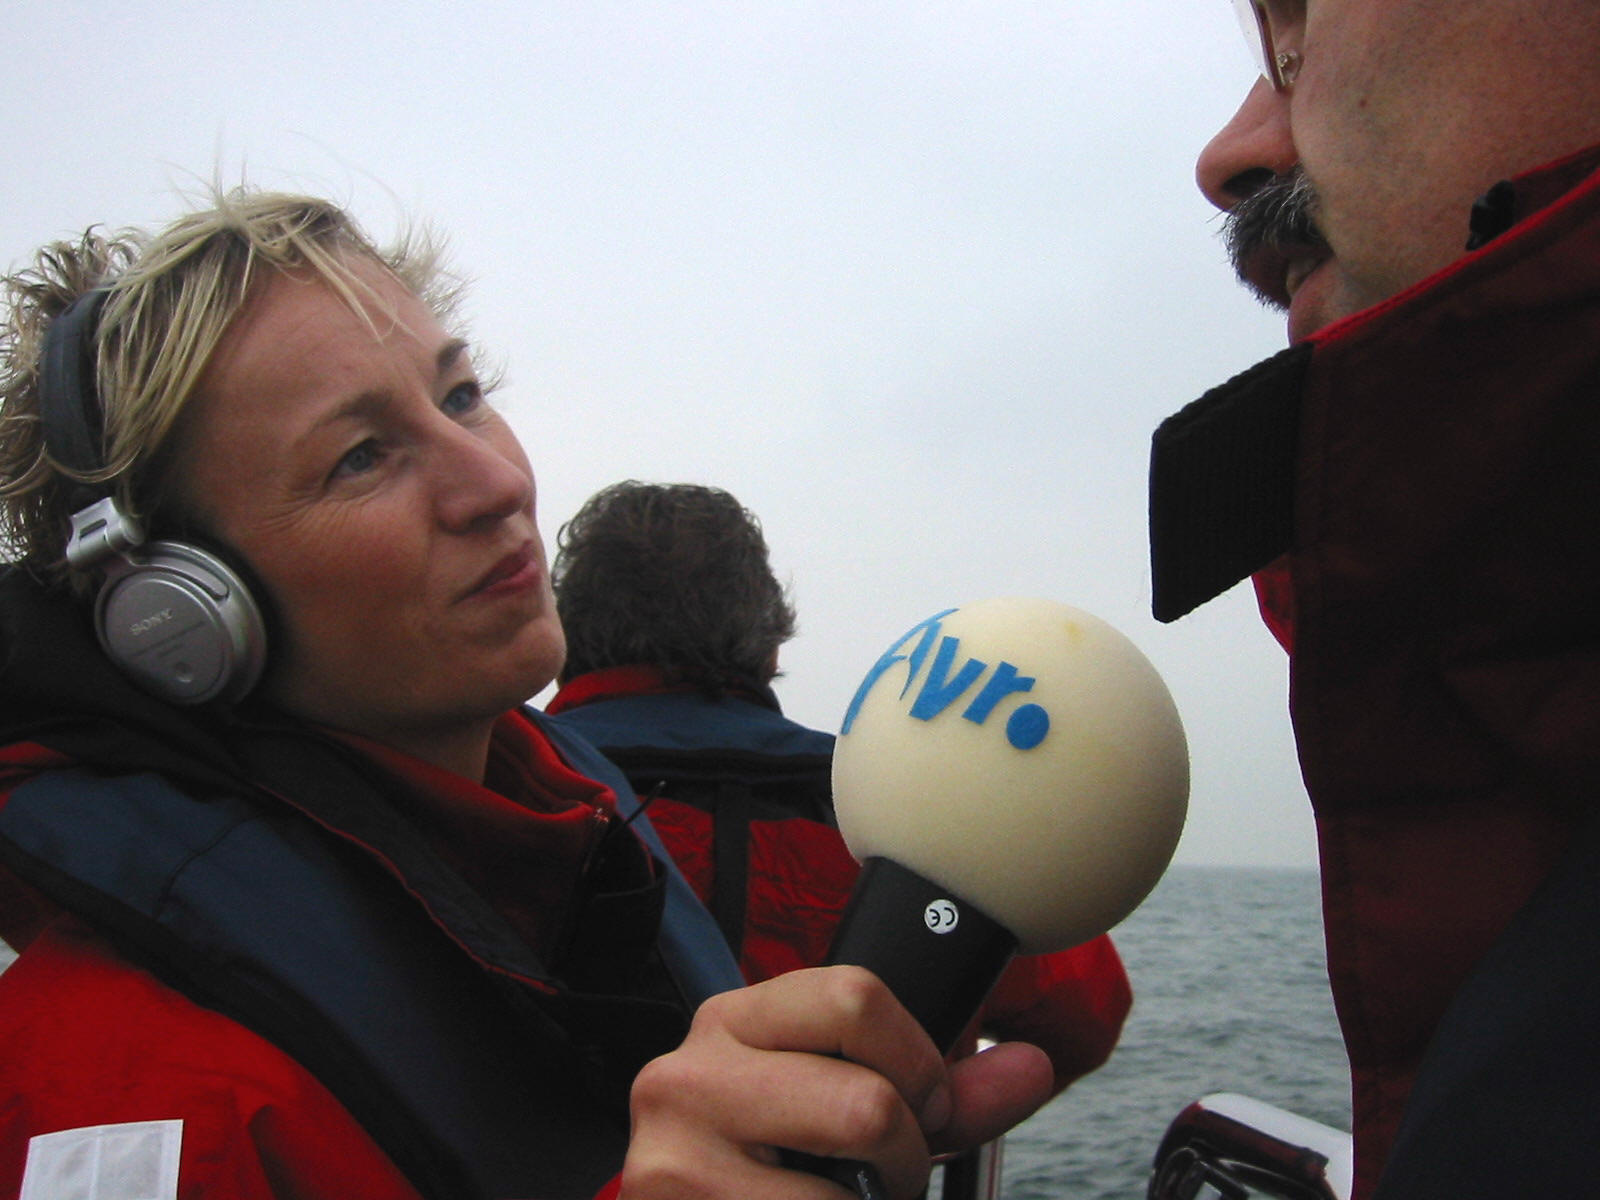 Interview about the first power delivery of the off shore windmill park in Egmond aan Zee, October 2006 (photo by Jos Wassink)